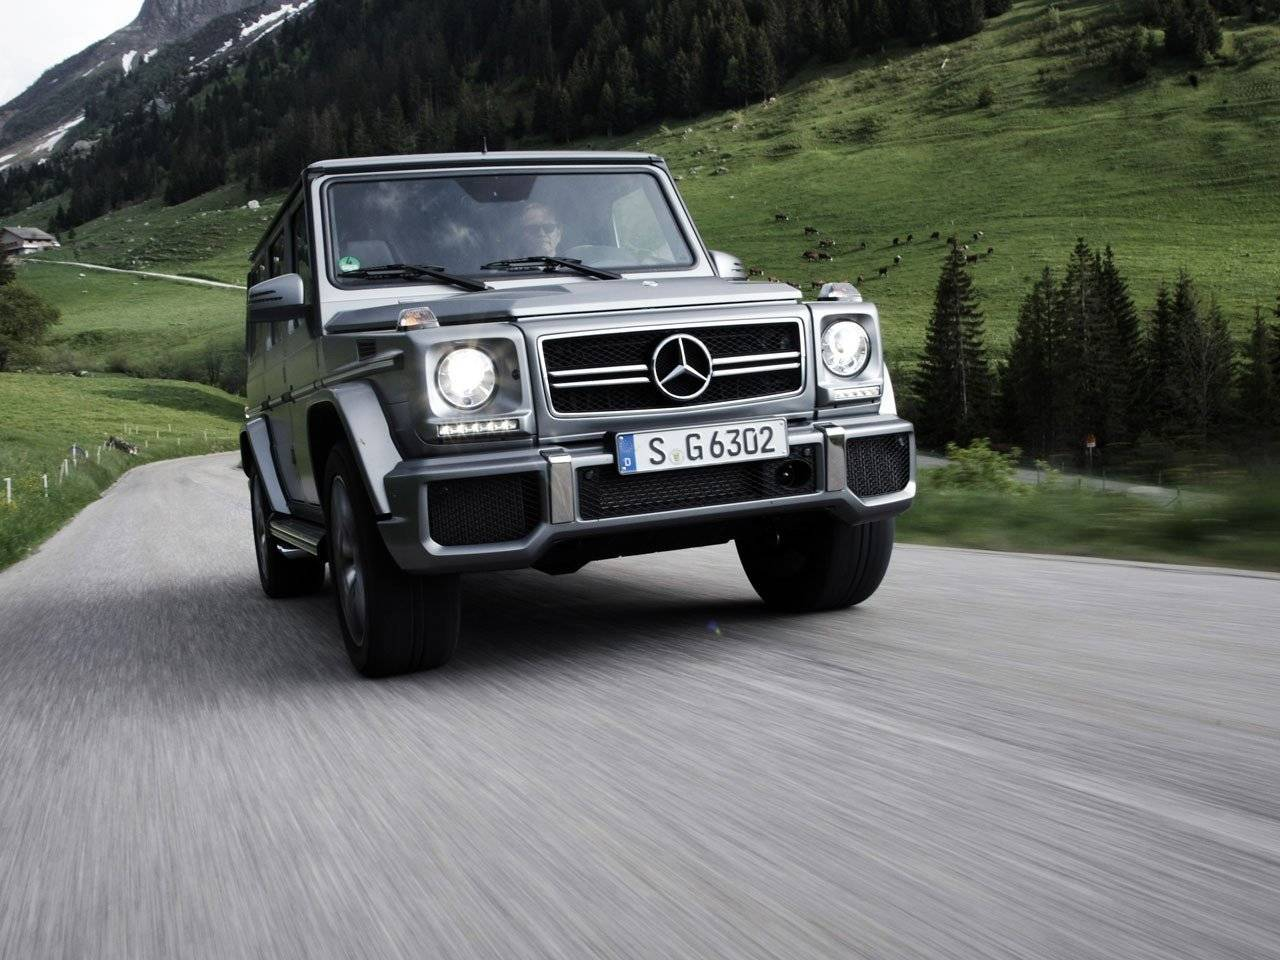 test mercedes g klasse amg autotests. Black Bedroom Furniture Sets. Home Design Ideas